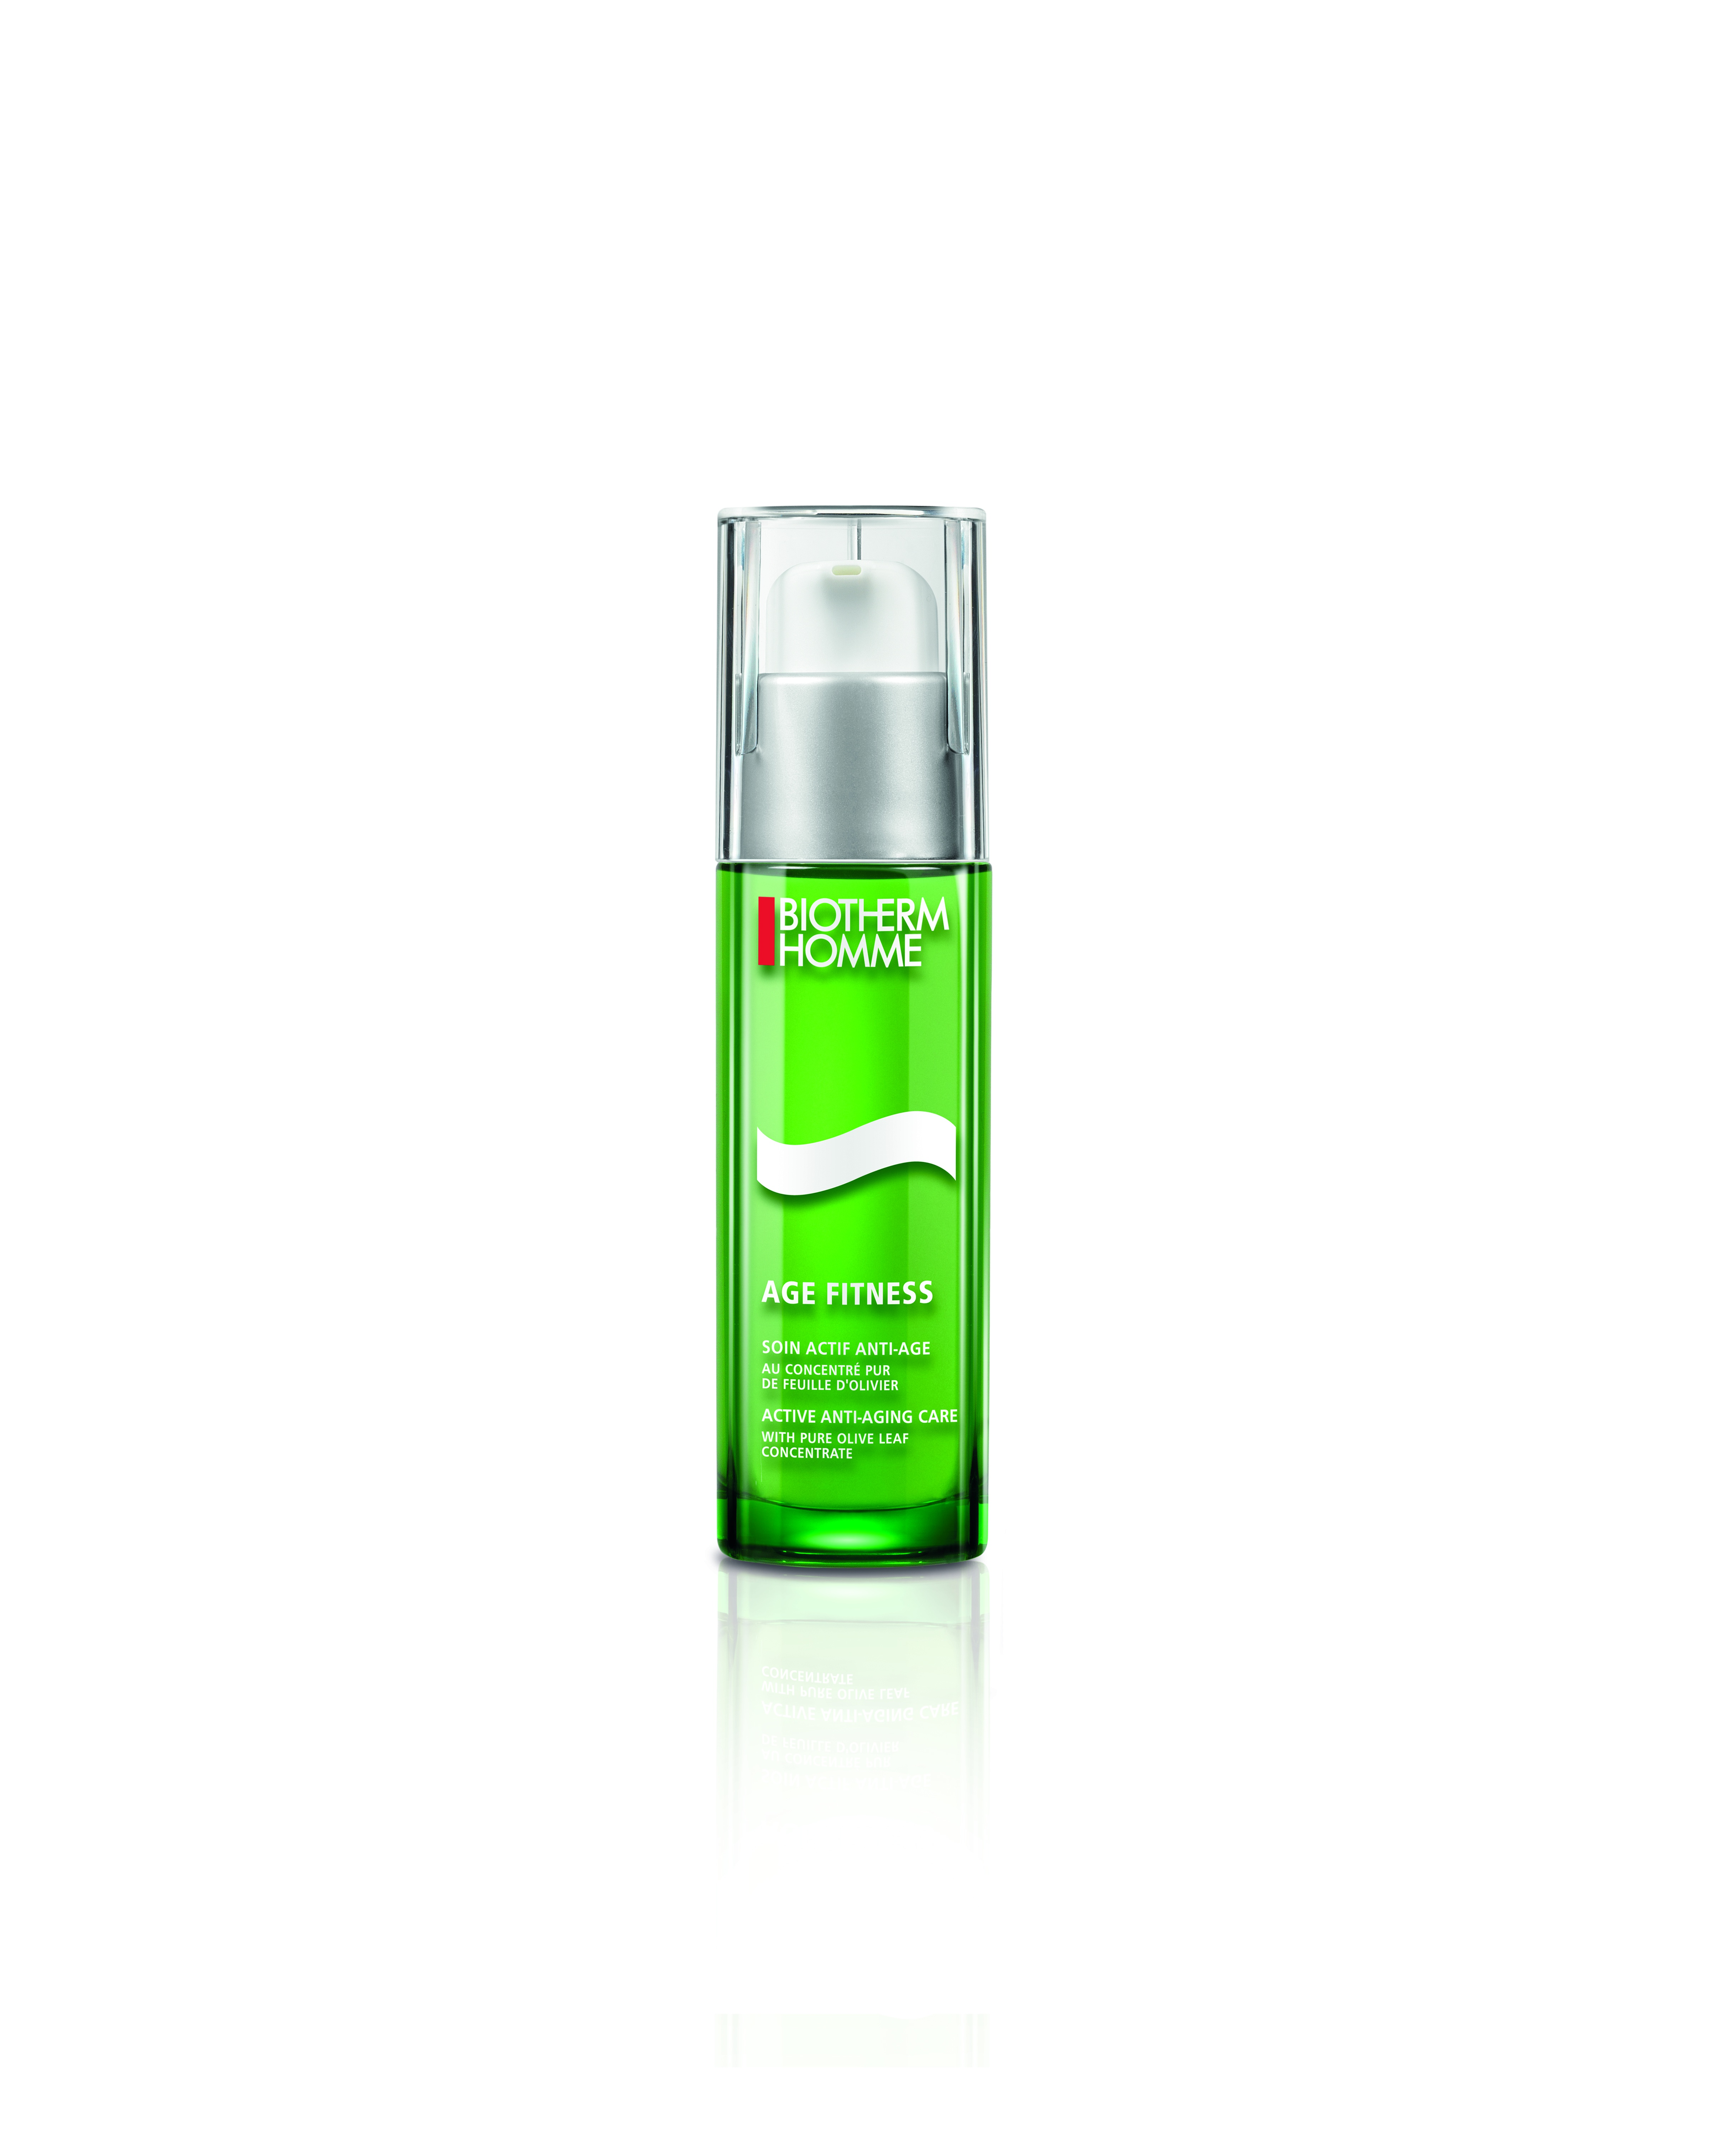 Biotherm Homme Age Fitness Active Anti-Aging Care, 50 ml